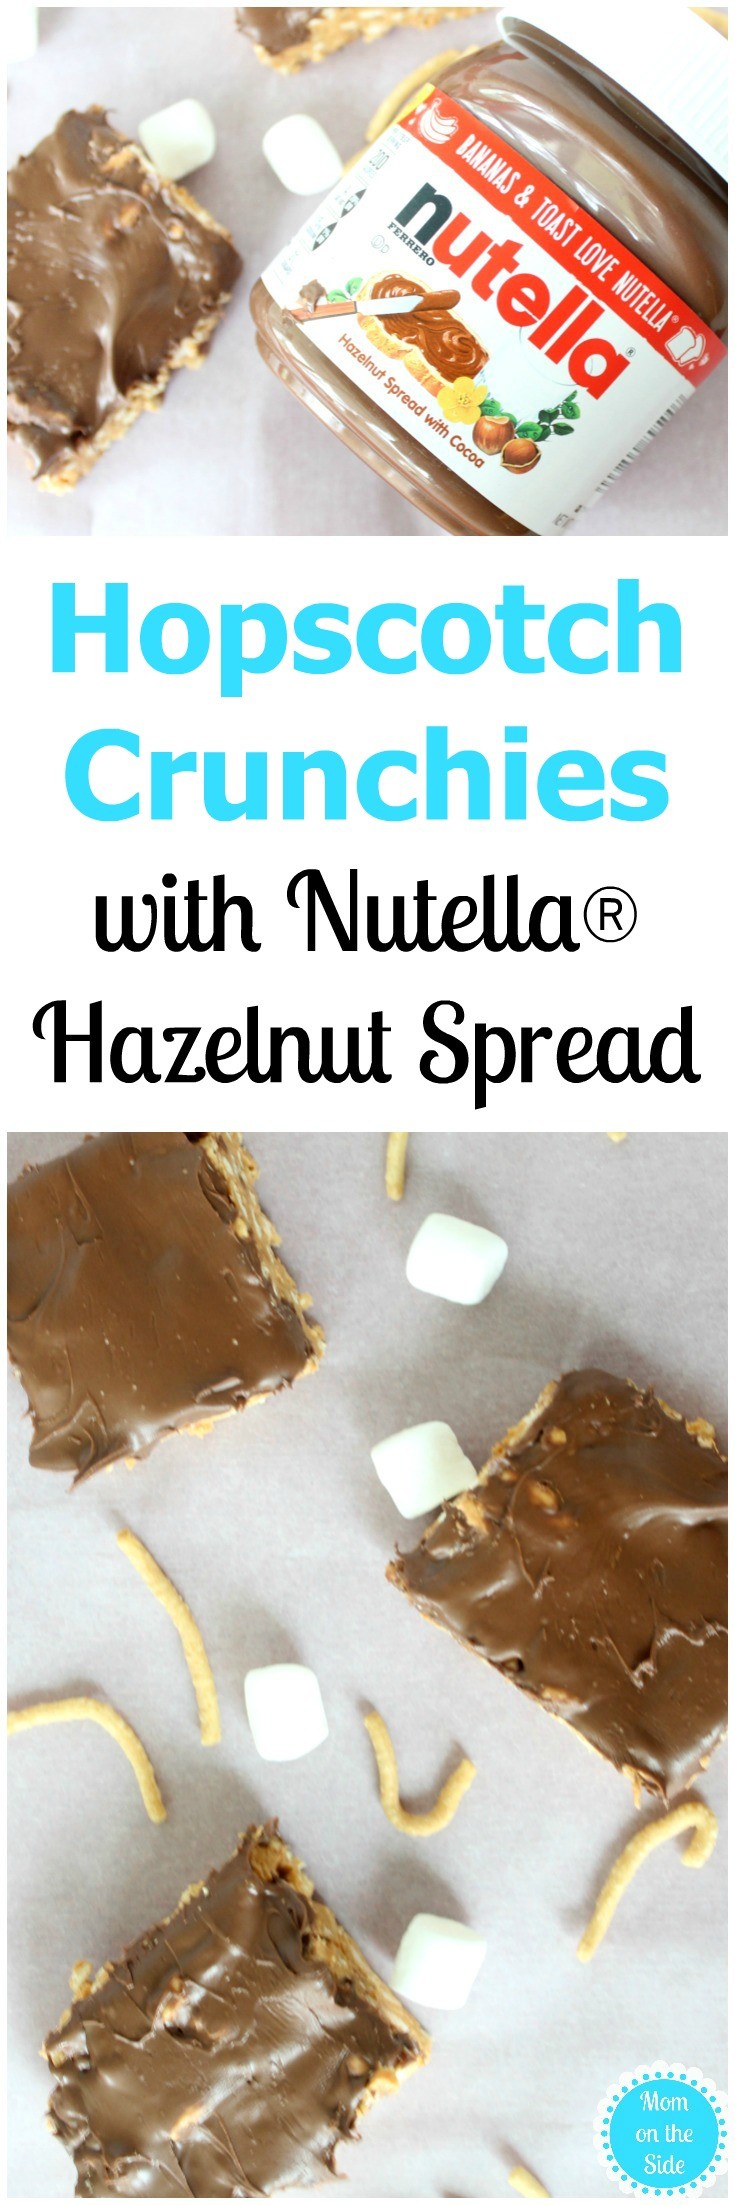 Easy Christmas Cookies: Hopscotch Crunchies with Nutella Hazelnut Spread